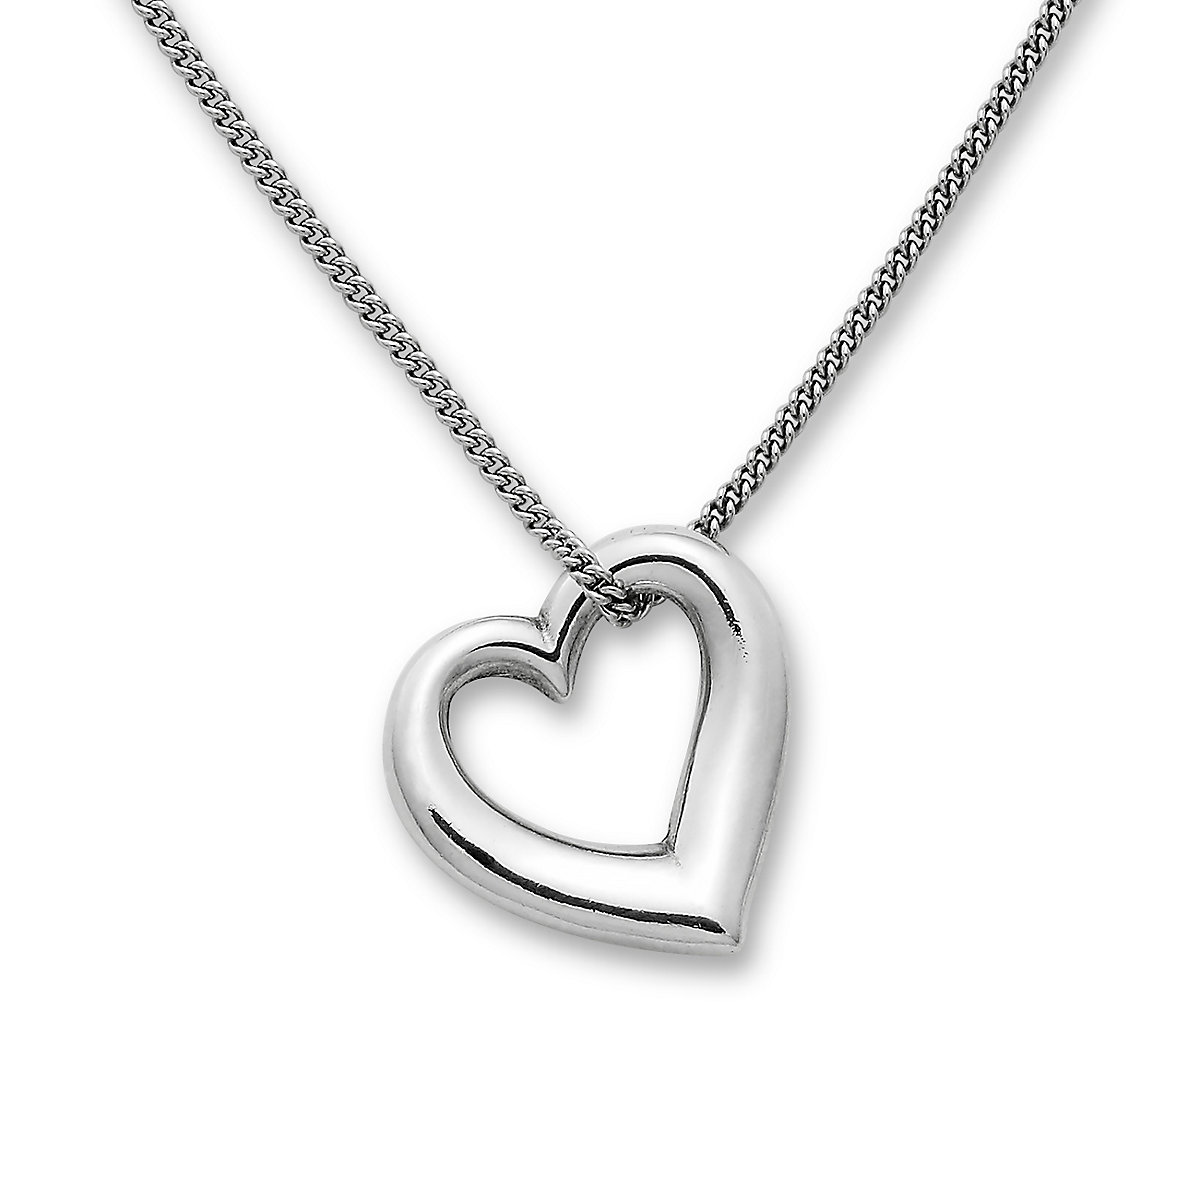 Silver Necklaces & Pendant Necklaces - James Avery